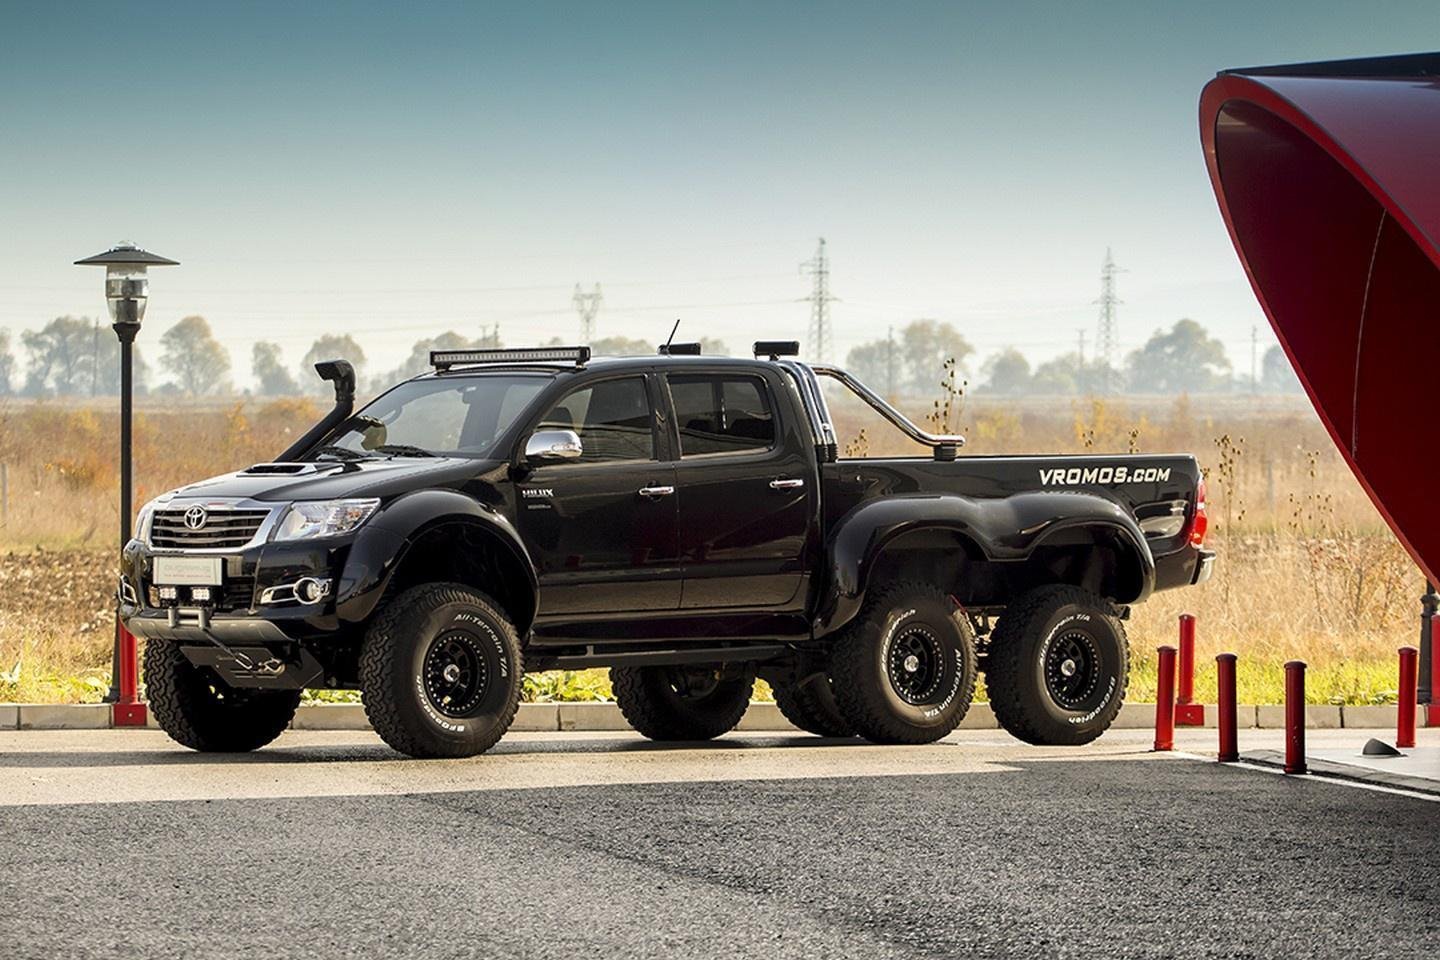 Toyota's Indestructible Hilux Gets Third Axle for Serious Off-Road Fury